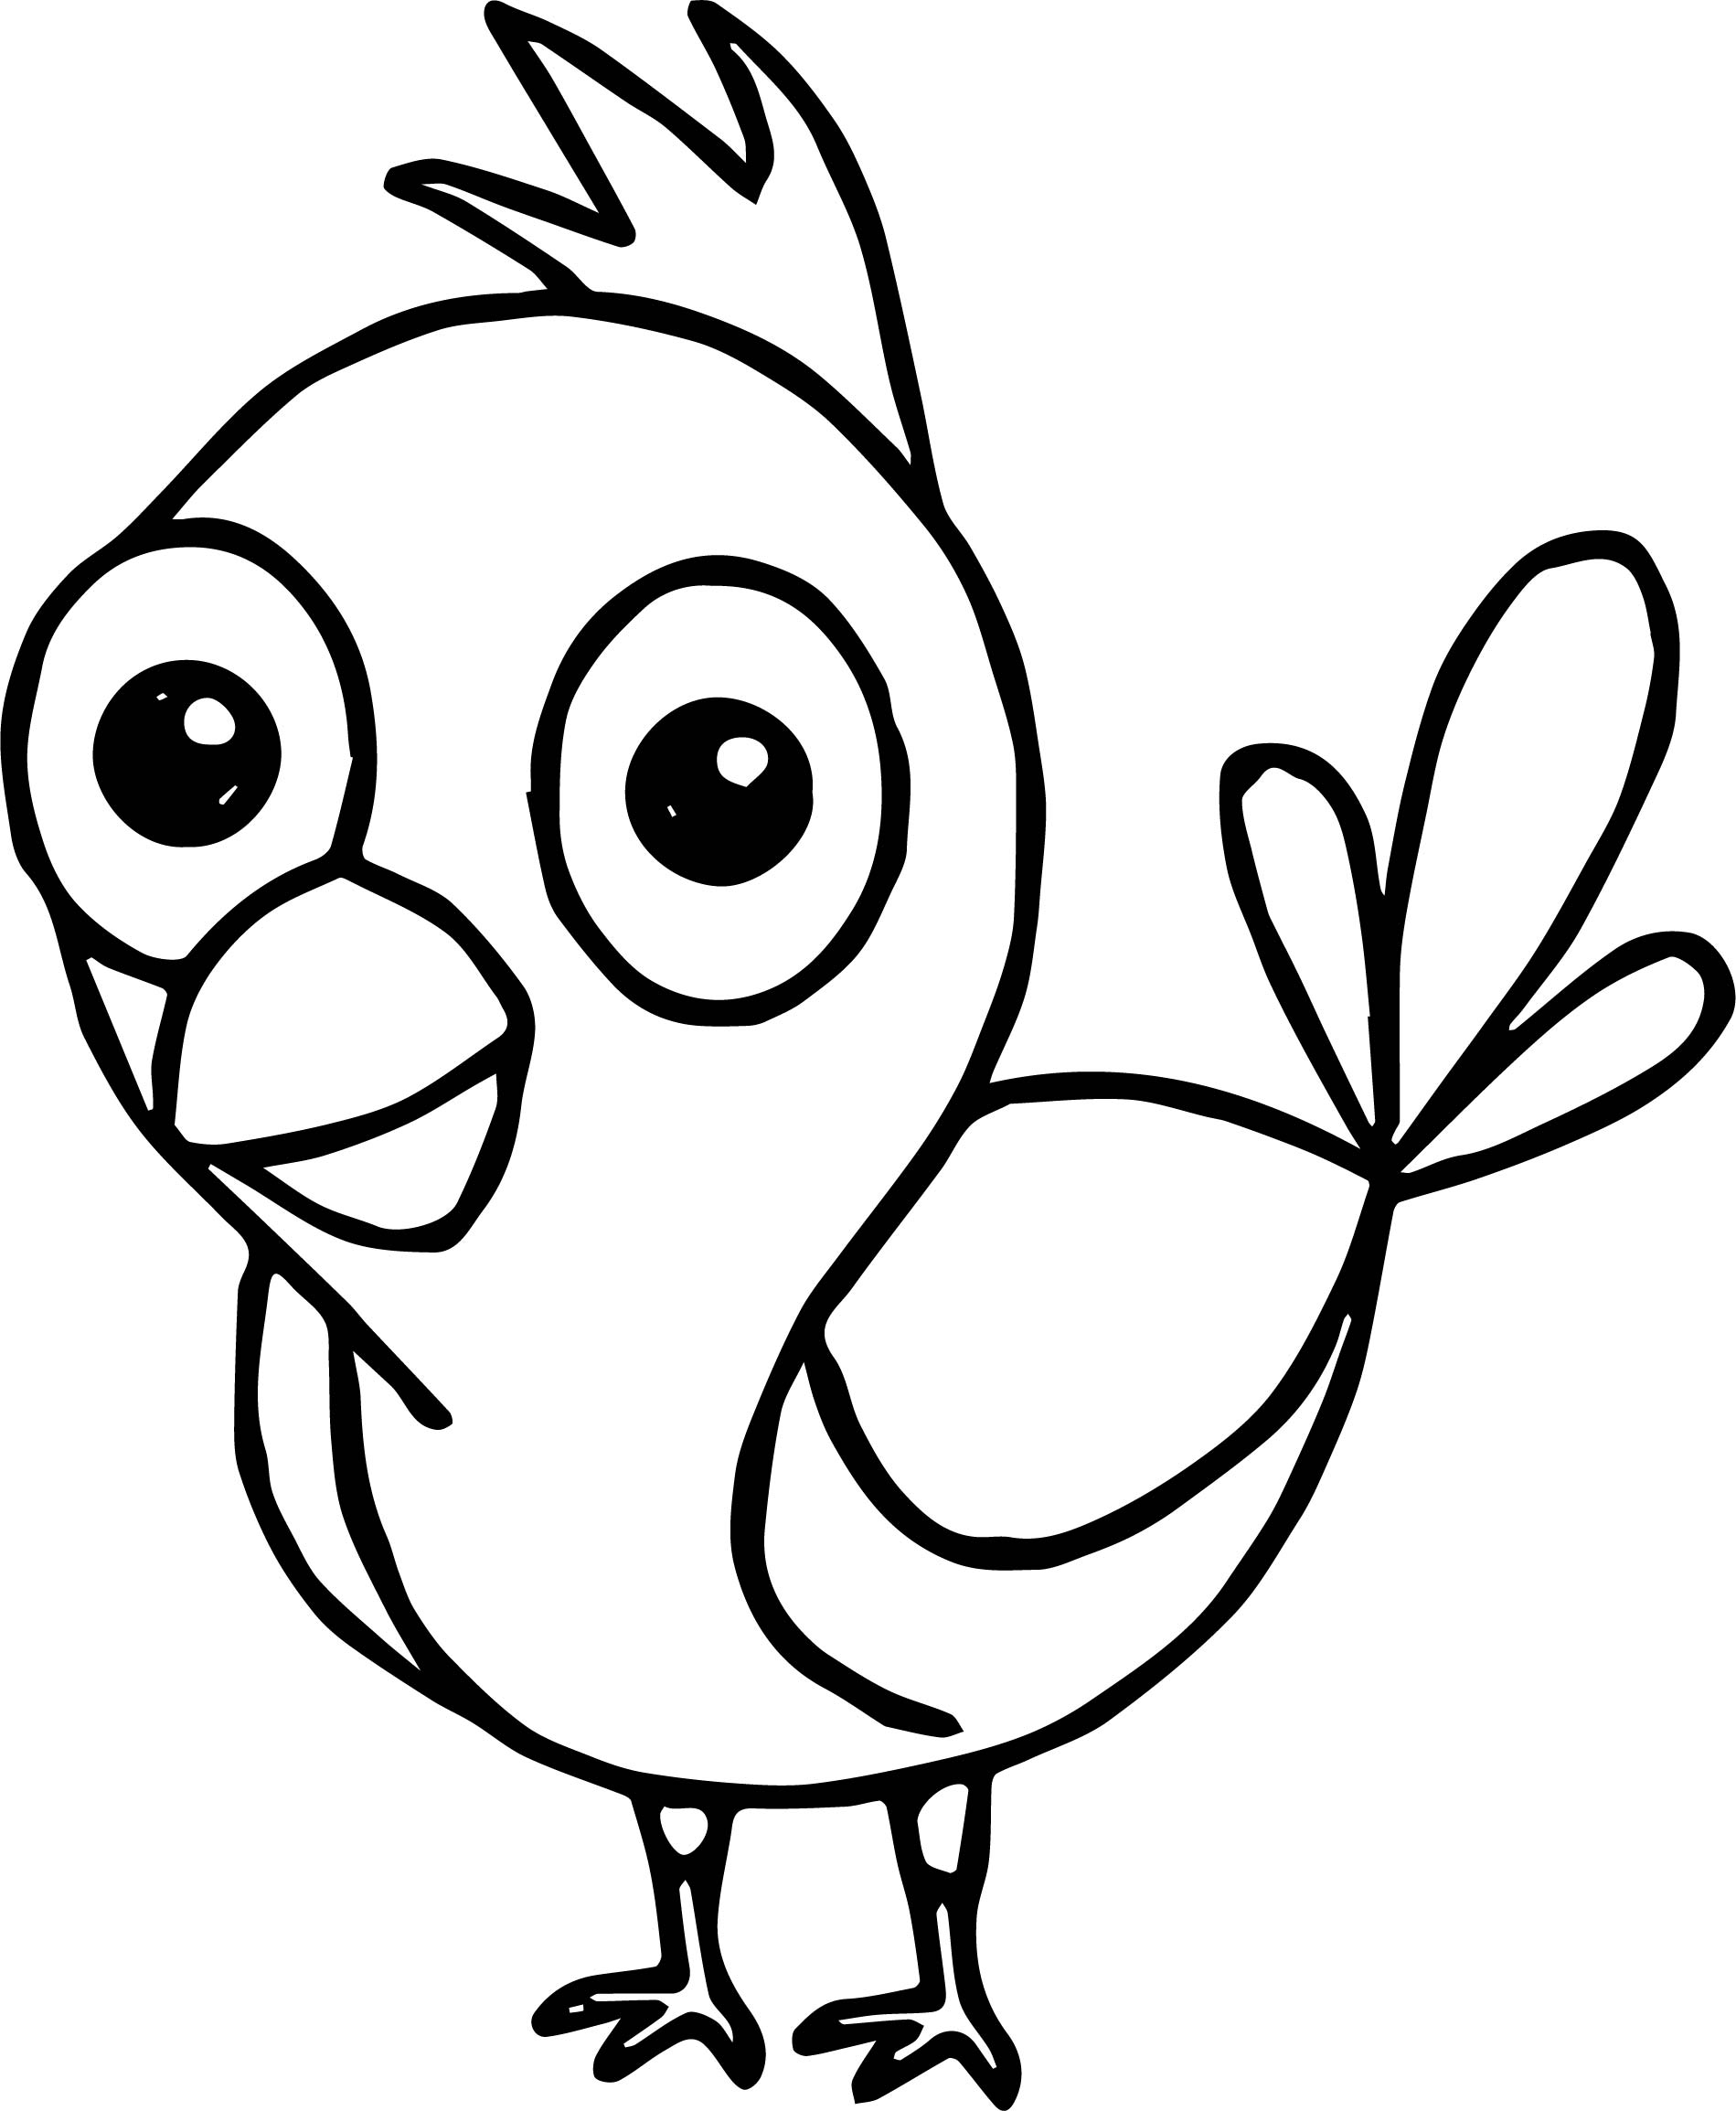 parrot cartoon coloring page wecoloringpage